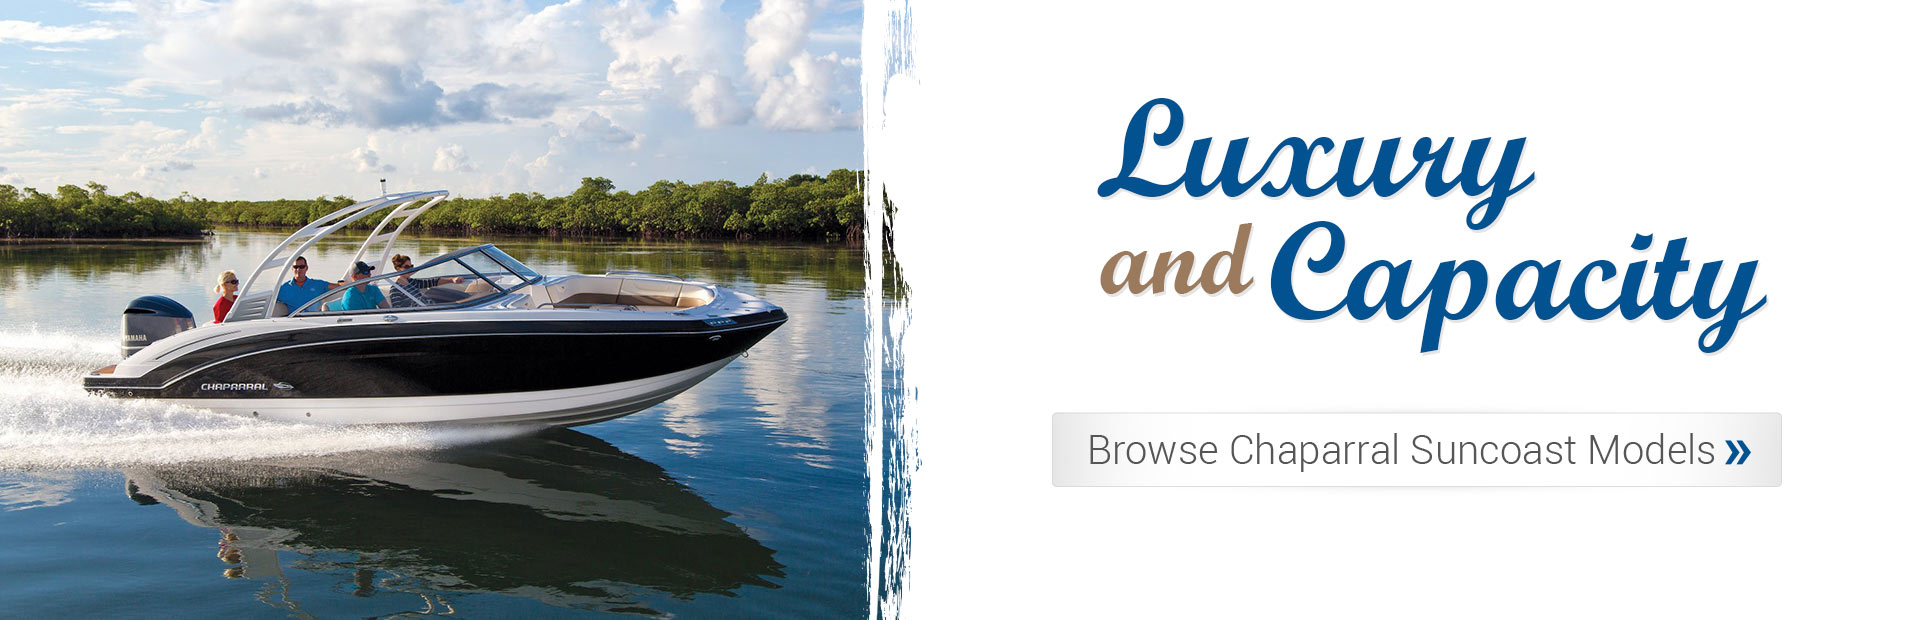 Chaparral Suncoast Models: Luxury and Capacity